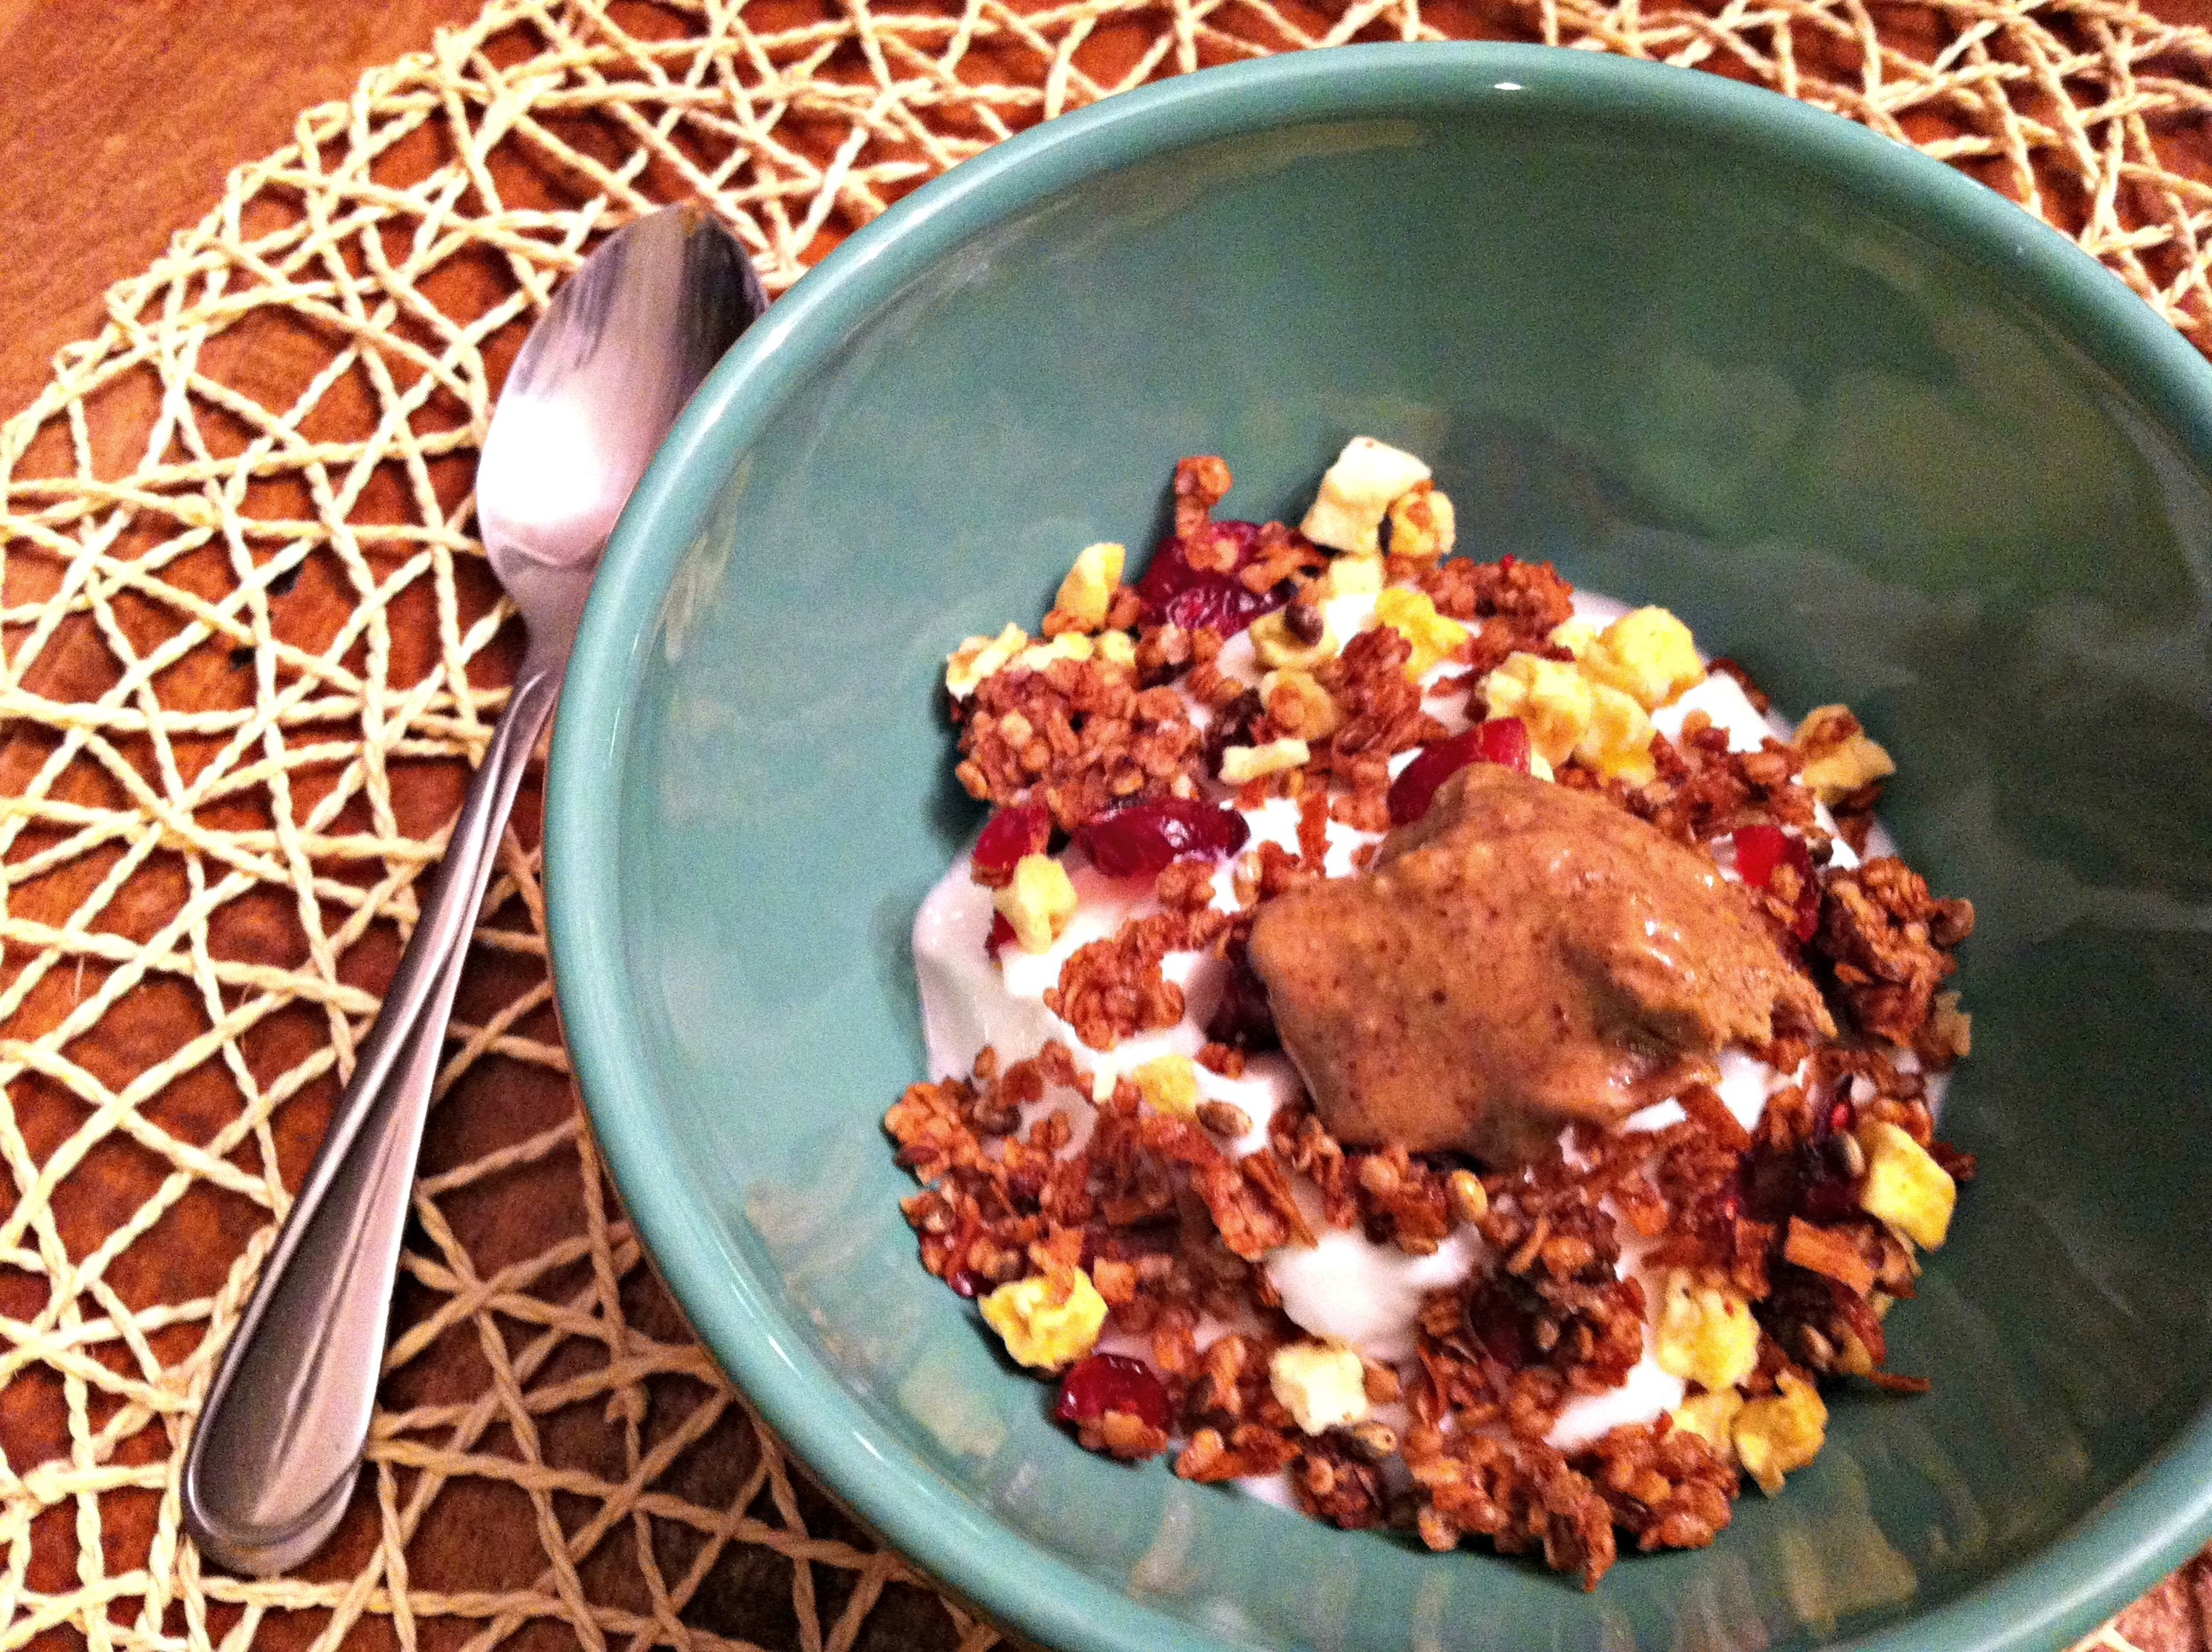 Quinoa granola yogurt bowl